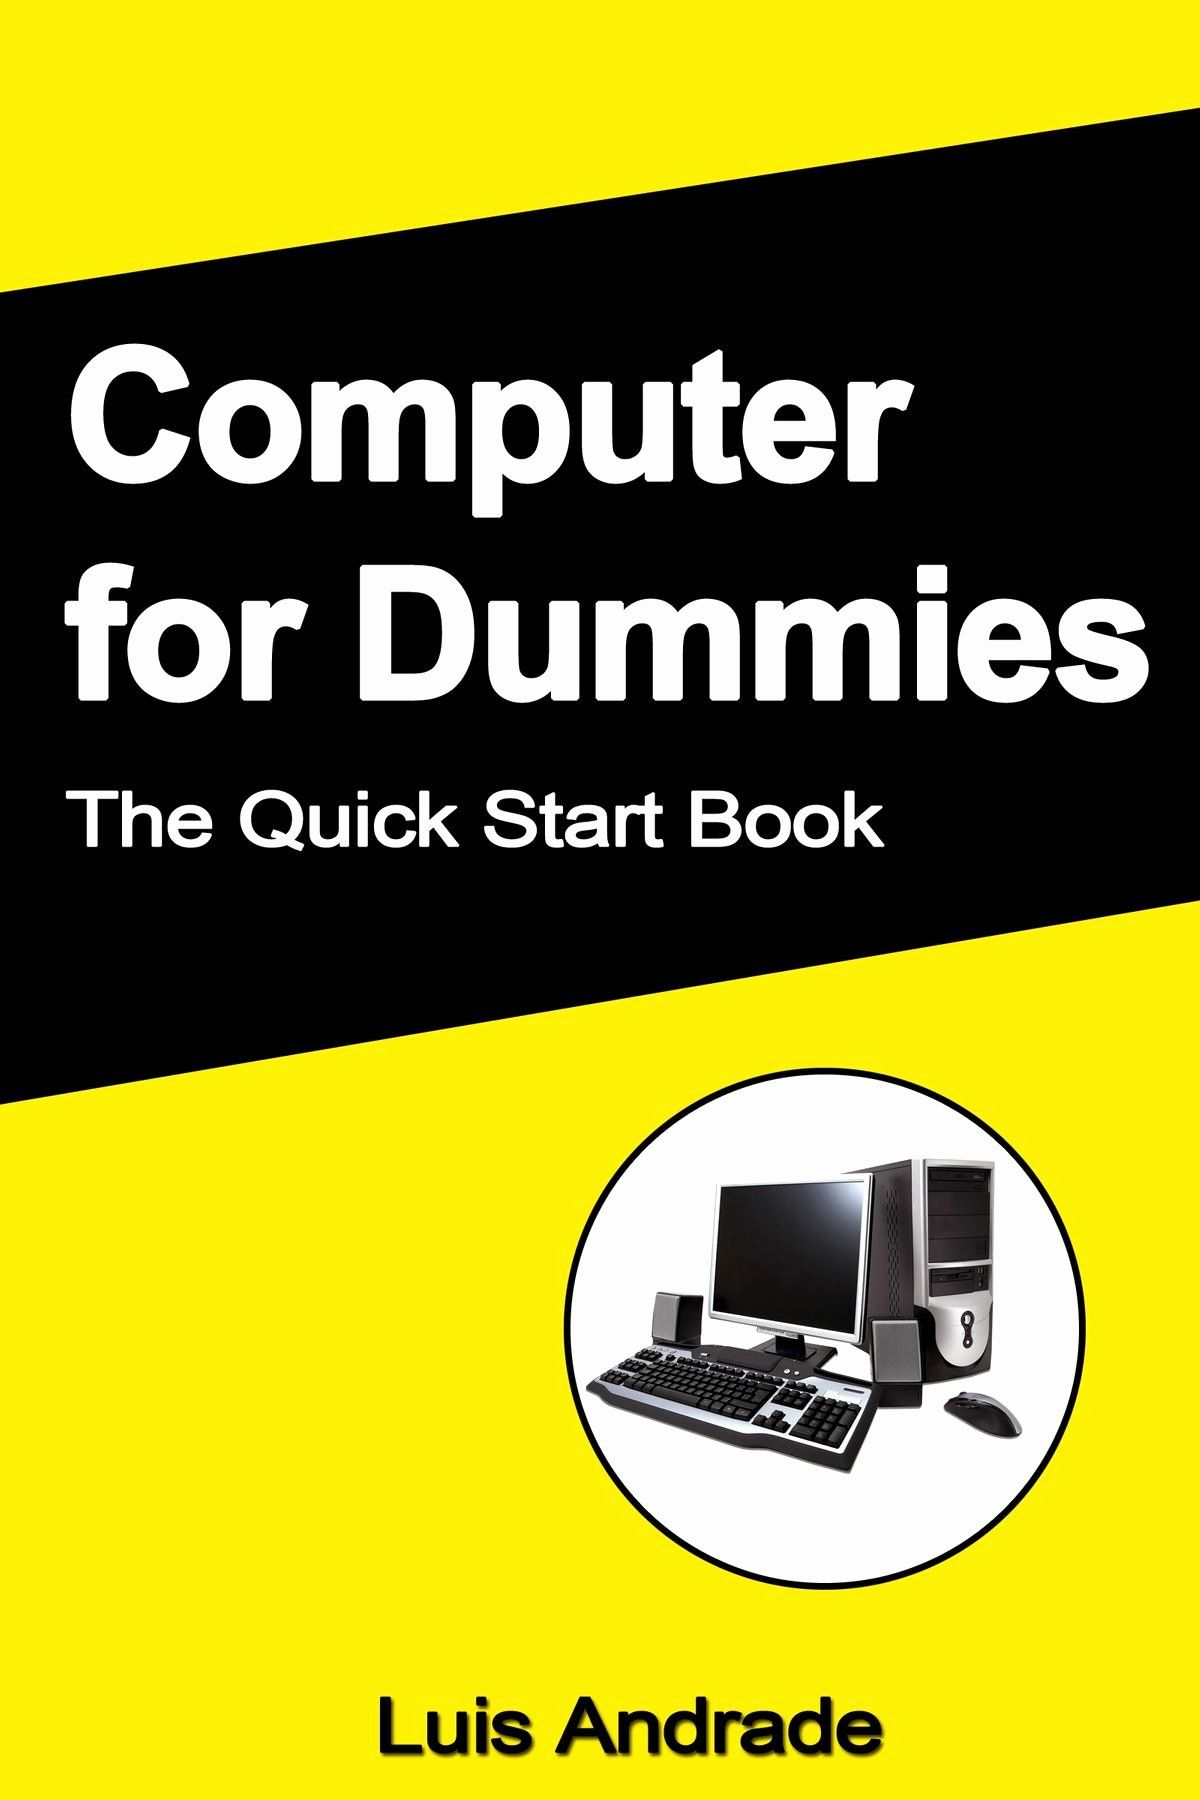 Book For Dummies Template New Puter For Dummies The Quick Start Book Ebook By Luis In 2020 Templates Books List Of Jobs